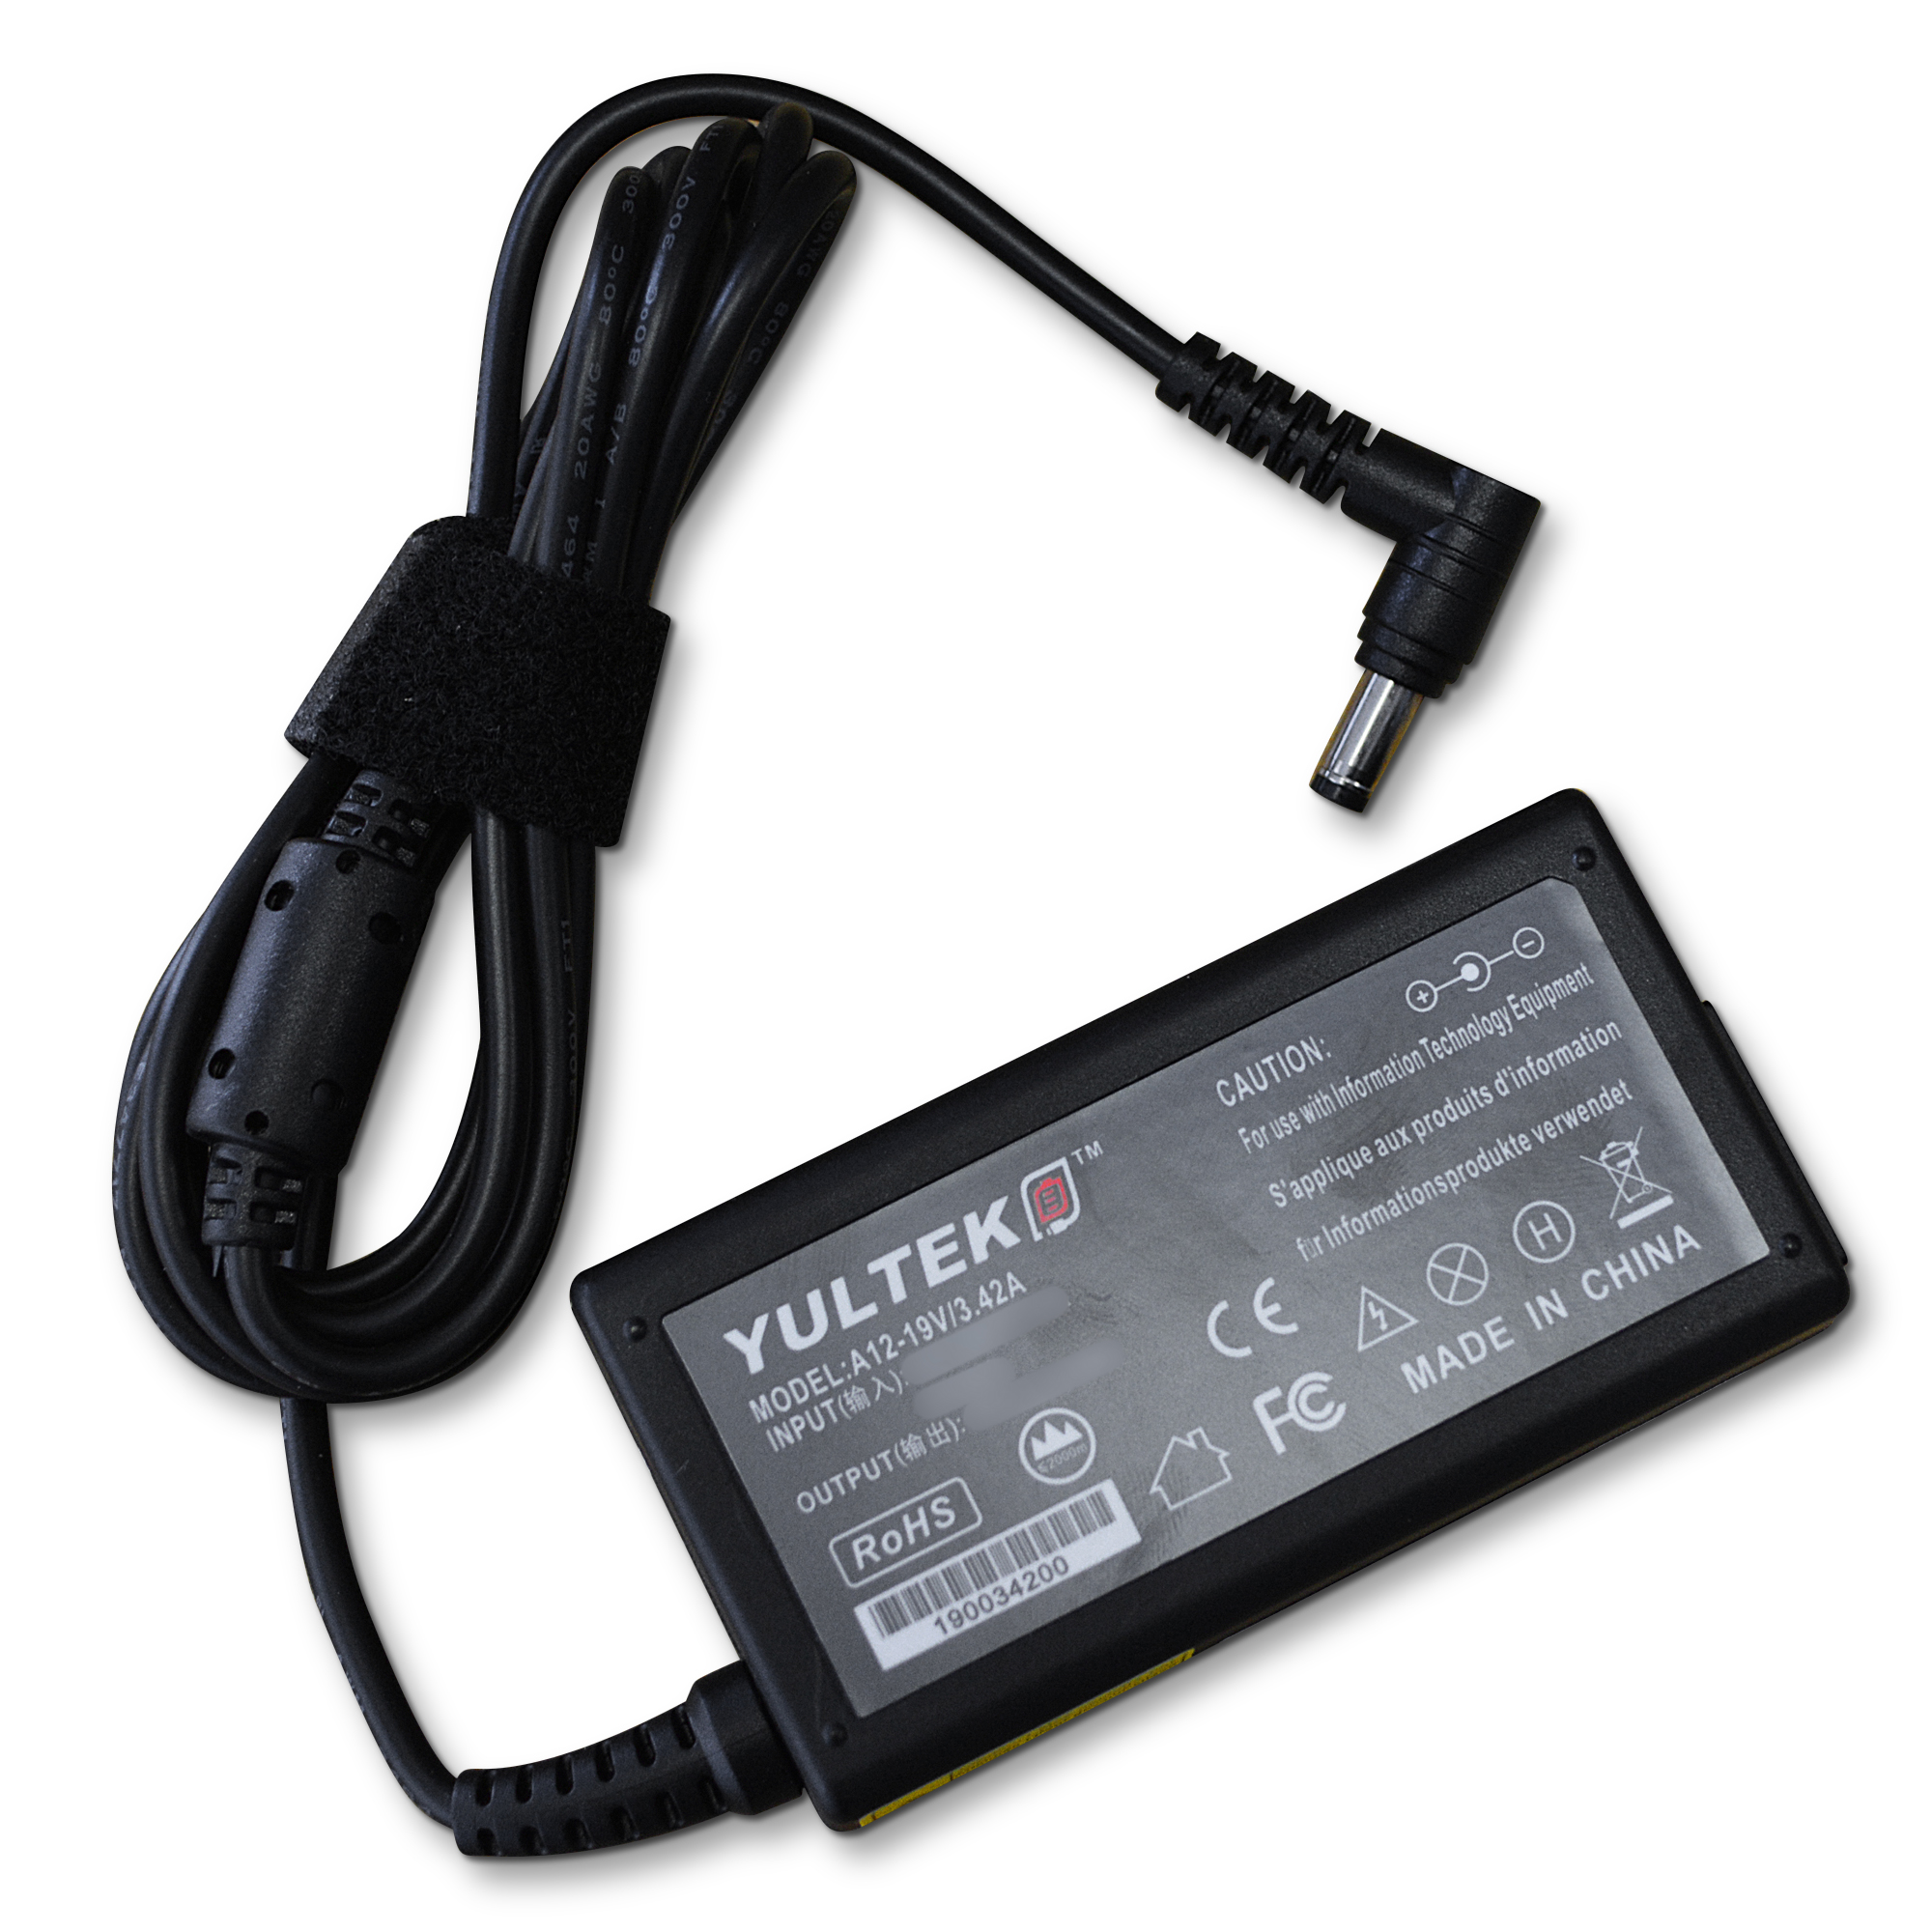 Fujitsu-Siemens Part Number WTS:25.10110.261 Laptop Charger